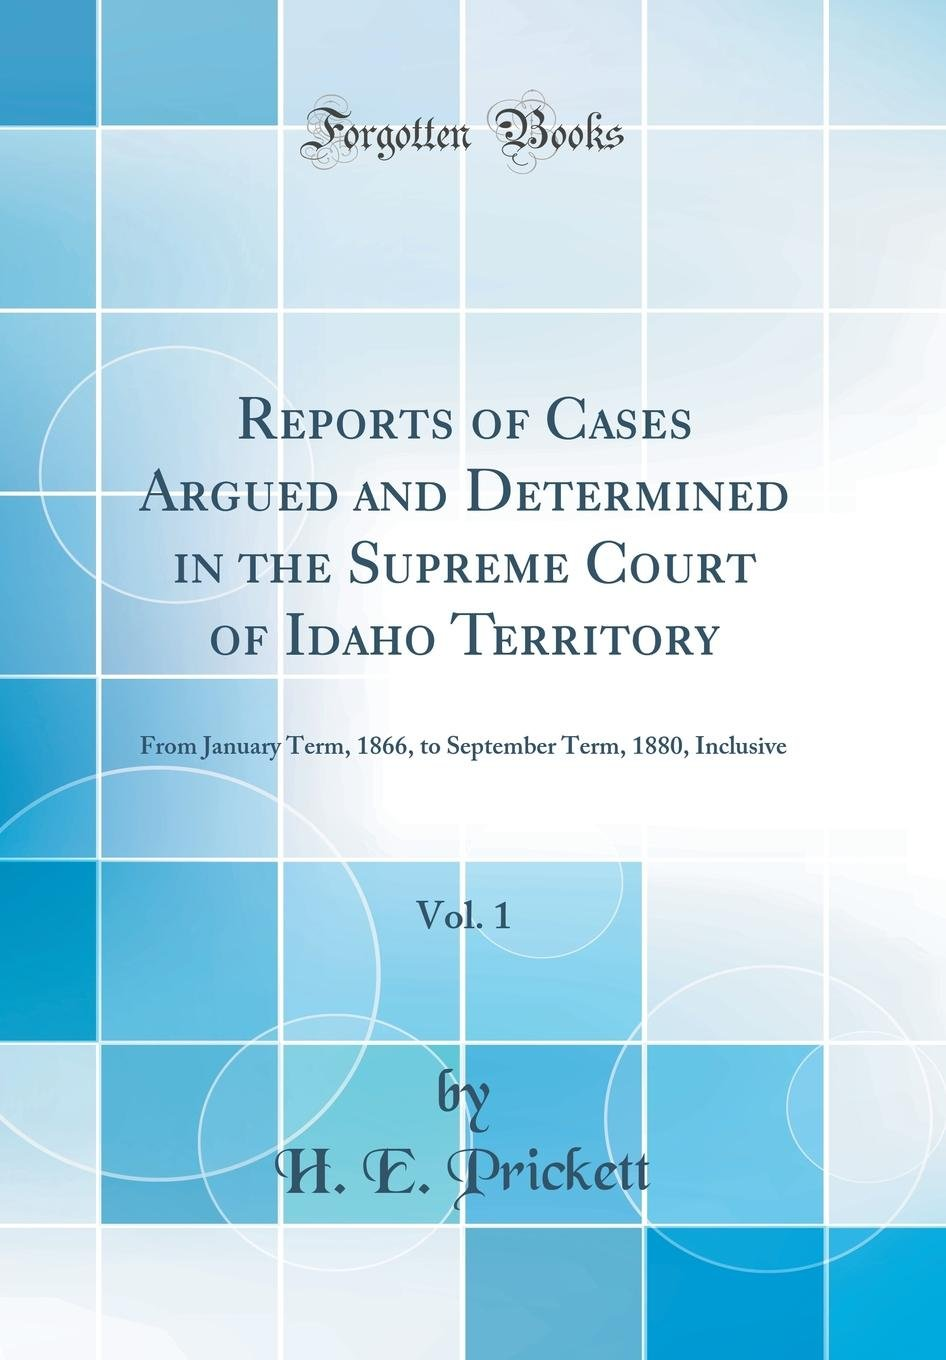 Reports of Cases Argued and Determined in the Supreme Court of Idaho Territory, Vol. 1: From January Term, 1866, to September Term, 1880, Inclusive (Classic Reprint) ebook